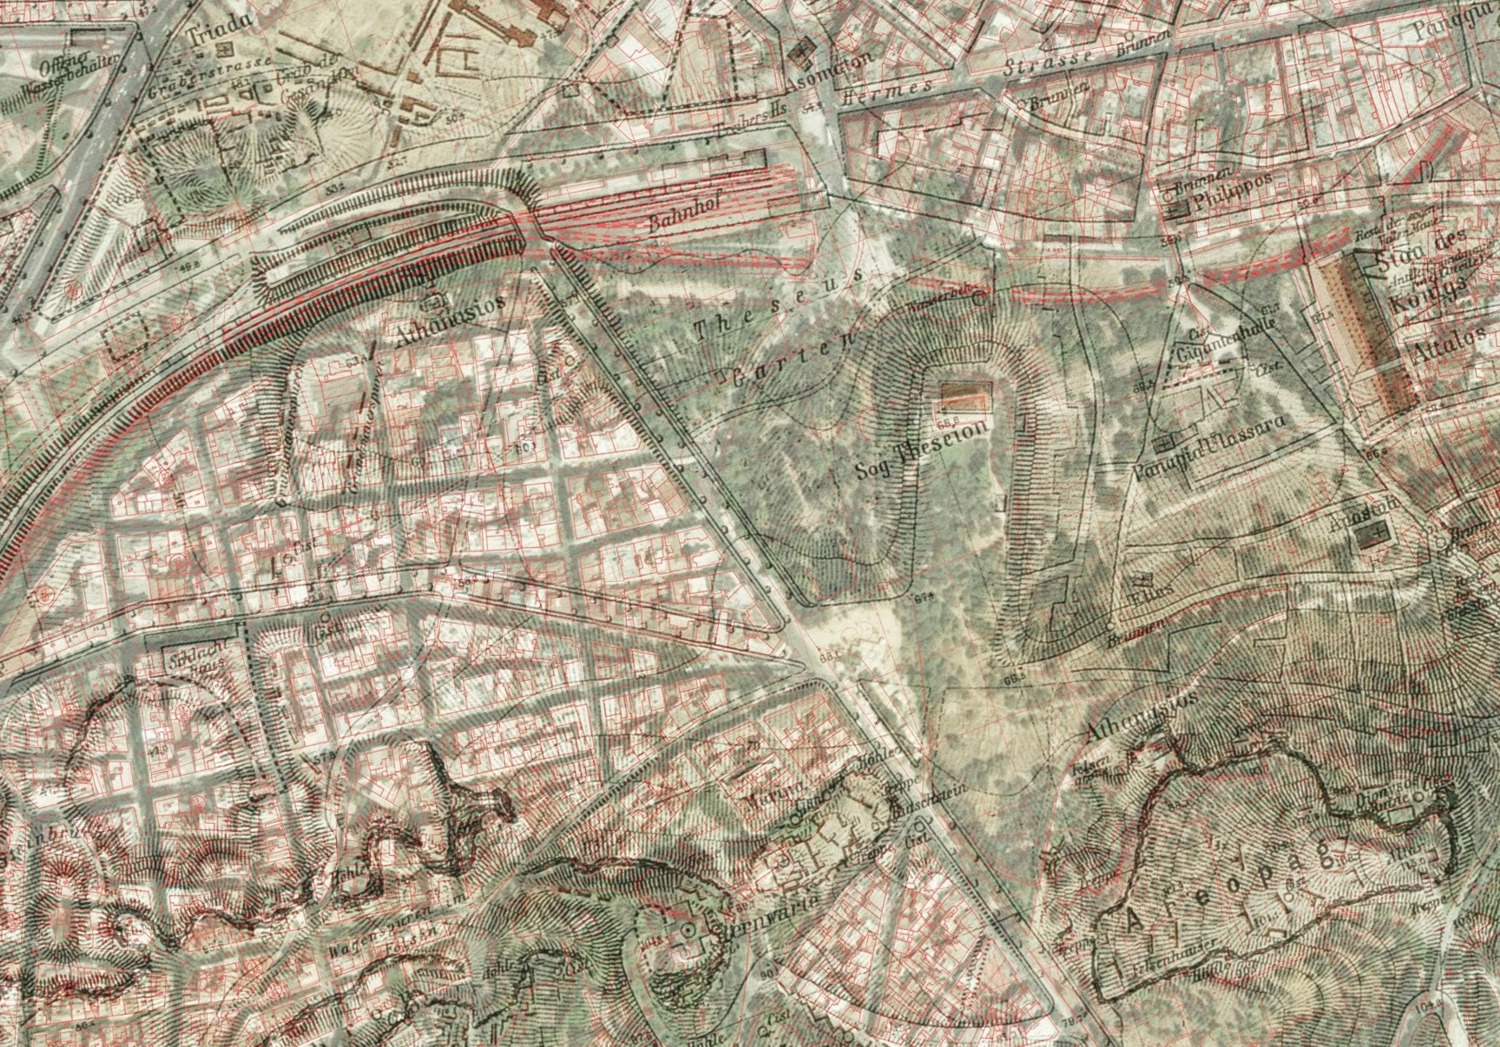 Detail of the map of Athens by Ε. Curtius & J. A. Kaupert (Atlas von Athen. Berlin 1878: ΒΙ.ΙΙΙ) superimposed on modern basemap.